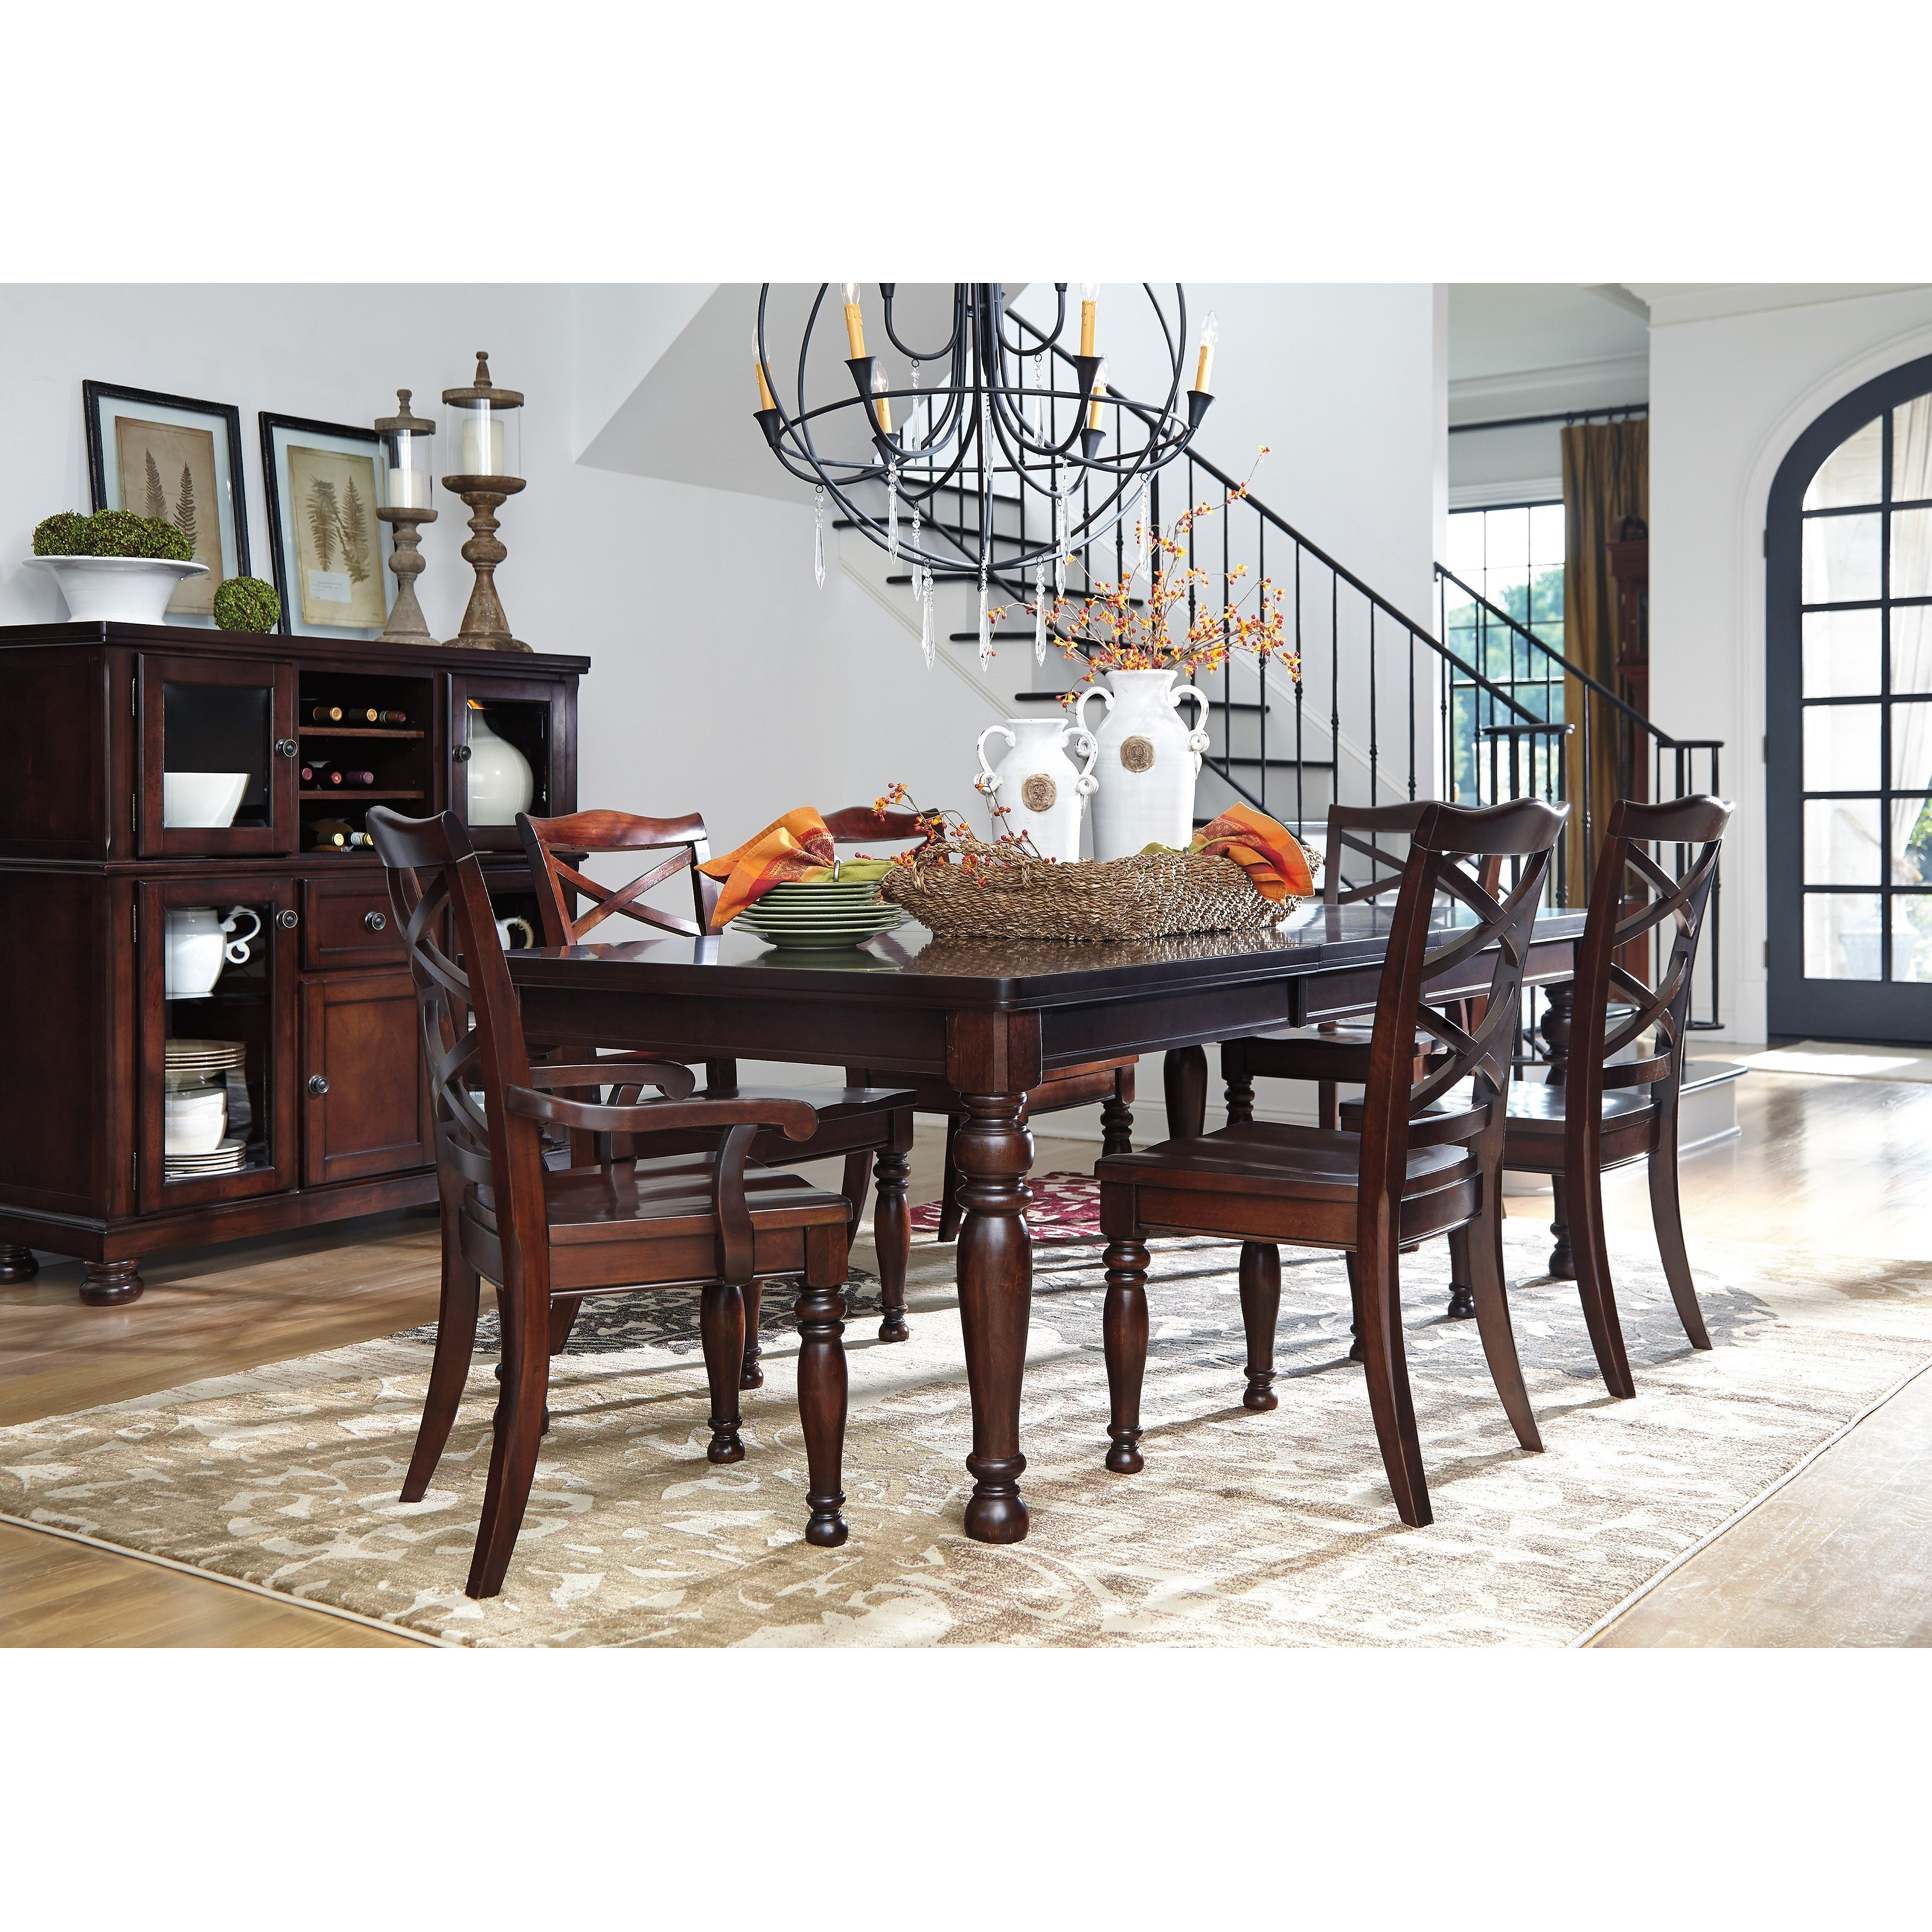 Porter Formal Dining Room Group by Ashley Furniture at Van Hill Furniture